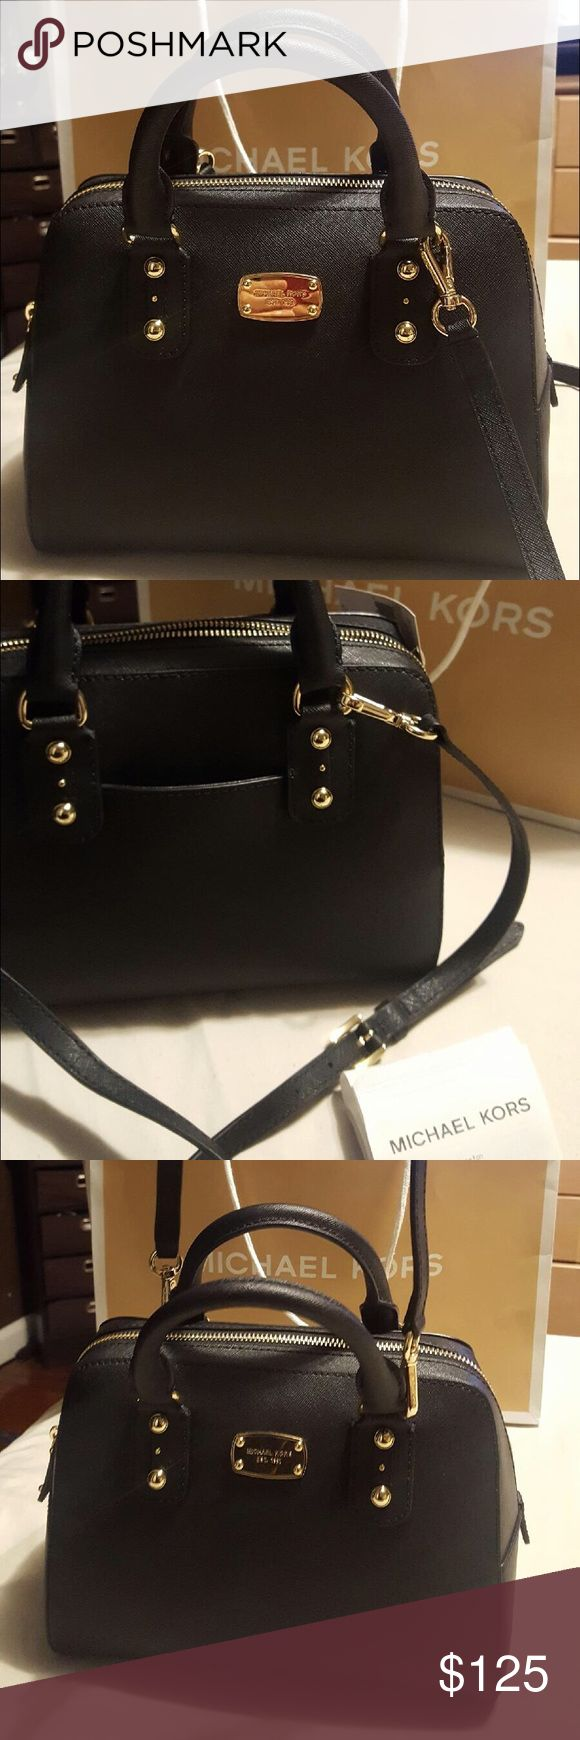 Michael Kors Saffiano black satchel crossbody Michael Kors Affiano black leather satchel crossbody. New with tags, shopping bag and receipt. Sorry no dust bag. Cross body strap is removable. Best price in Poshmark.  Michael Kors Bags Satchels